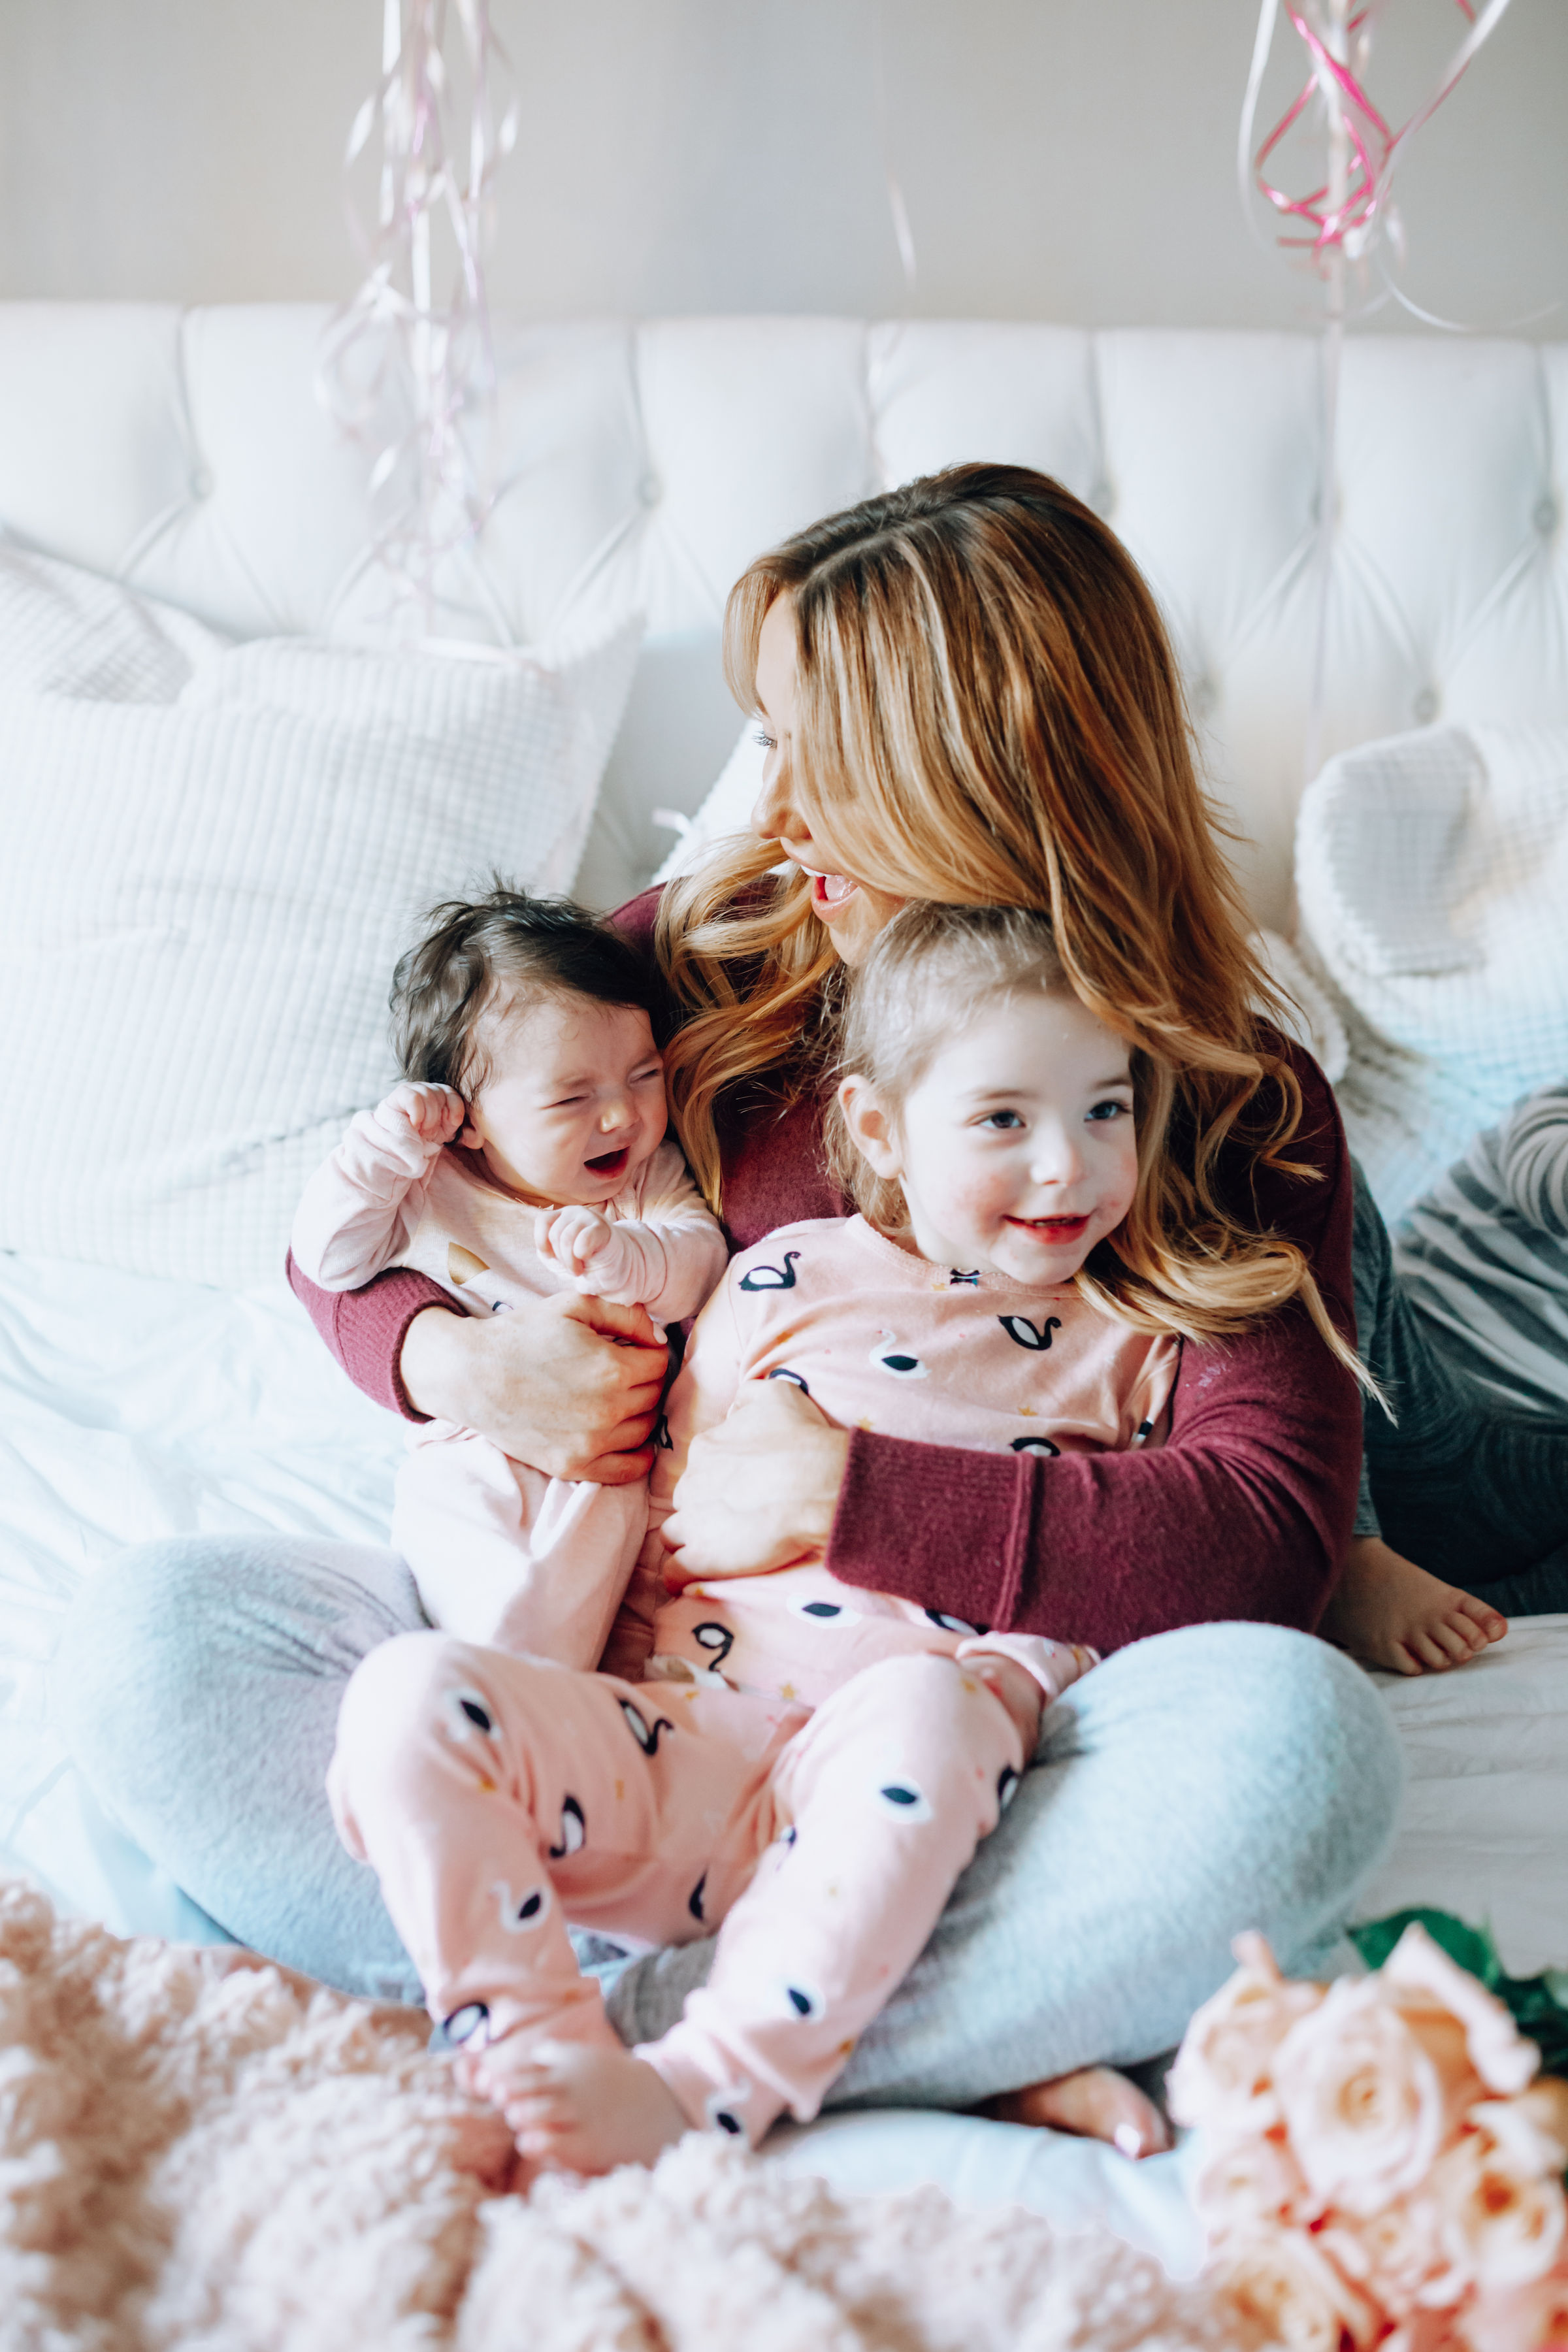 Top 7 Birthday Gifts for Yourself featured by top US life and style blog, For the Love: image of a mom and her 3 children in her bedroom having fun with balloons.